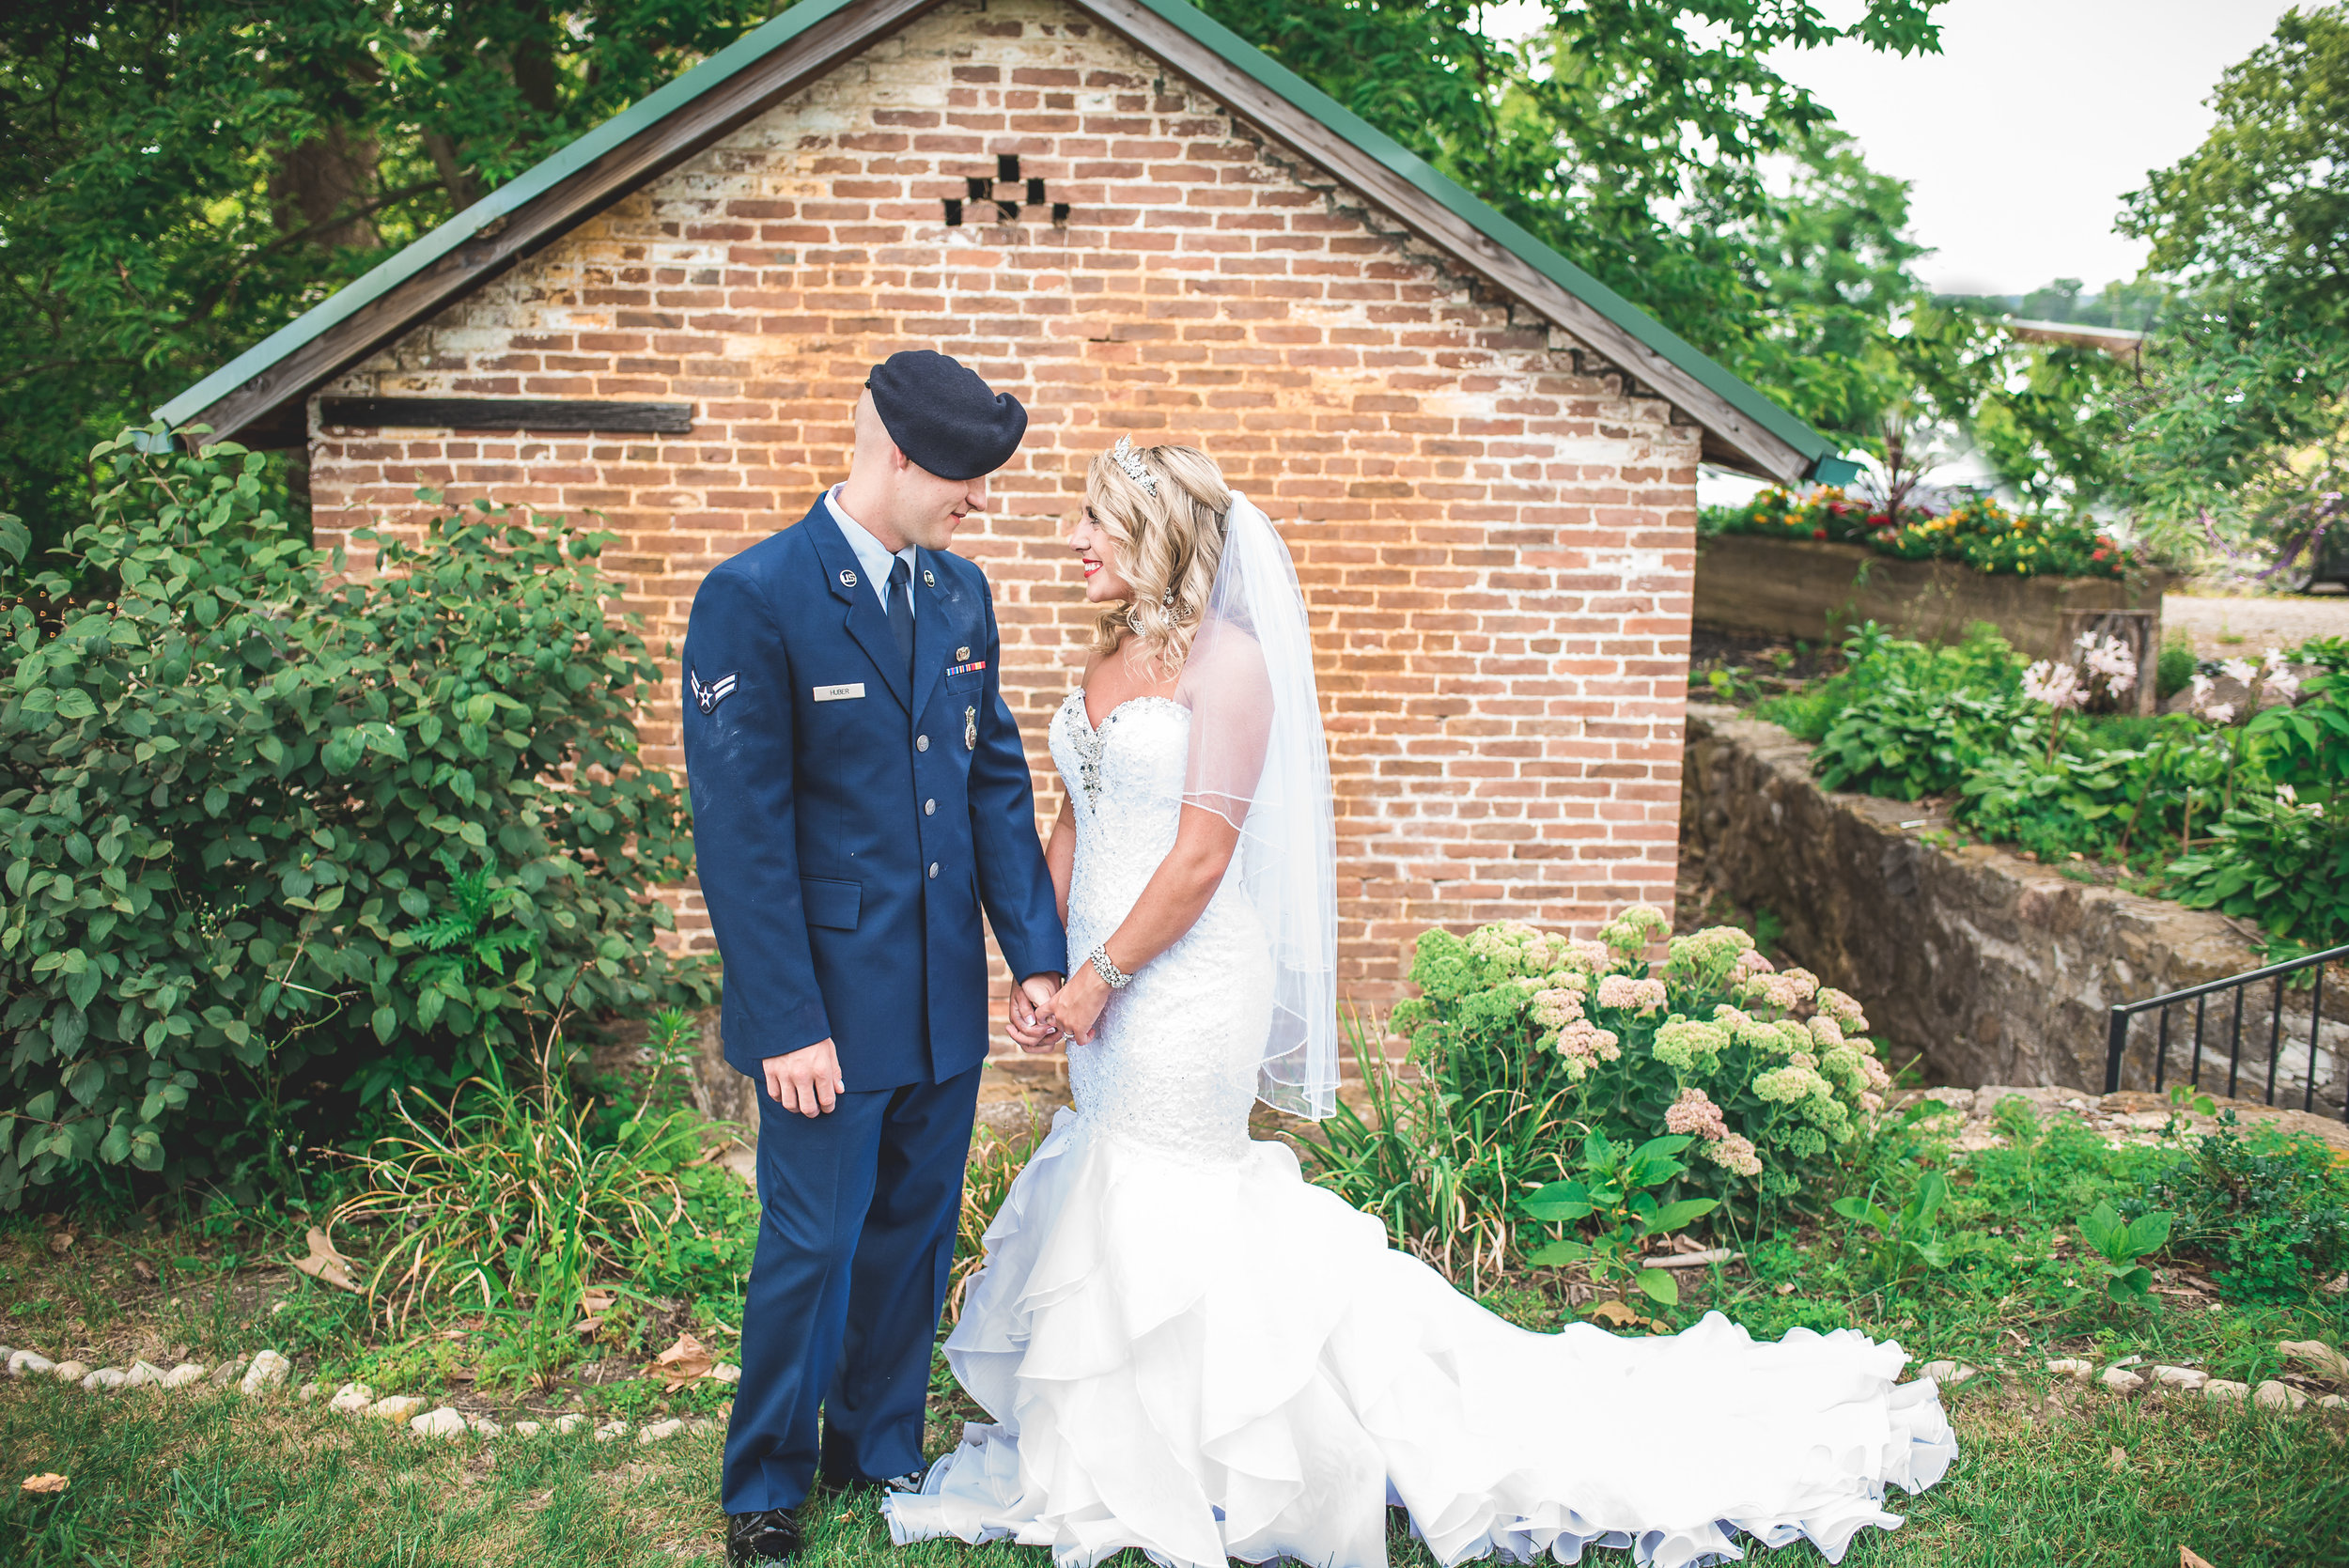 summer-wedding-Simon-Kenton-Inn-brick-house-bride-and-groom-portrait